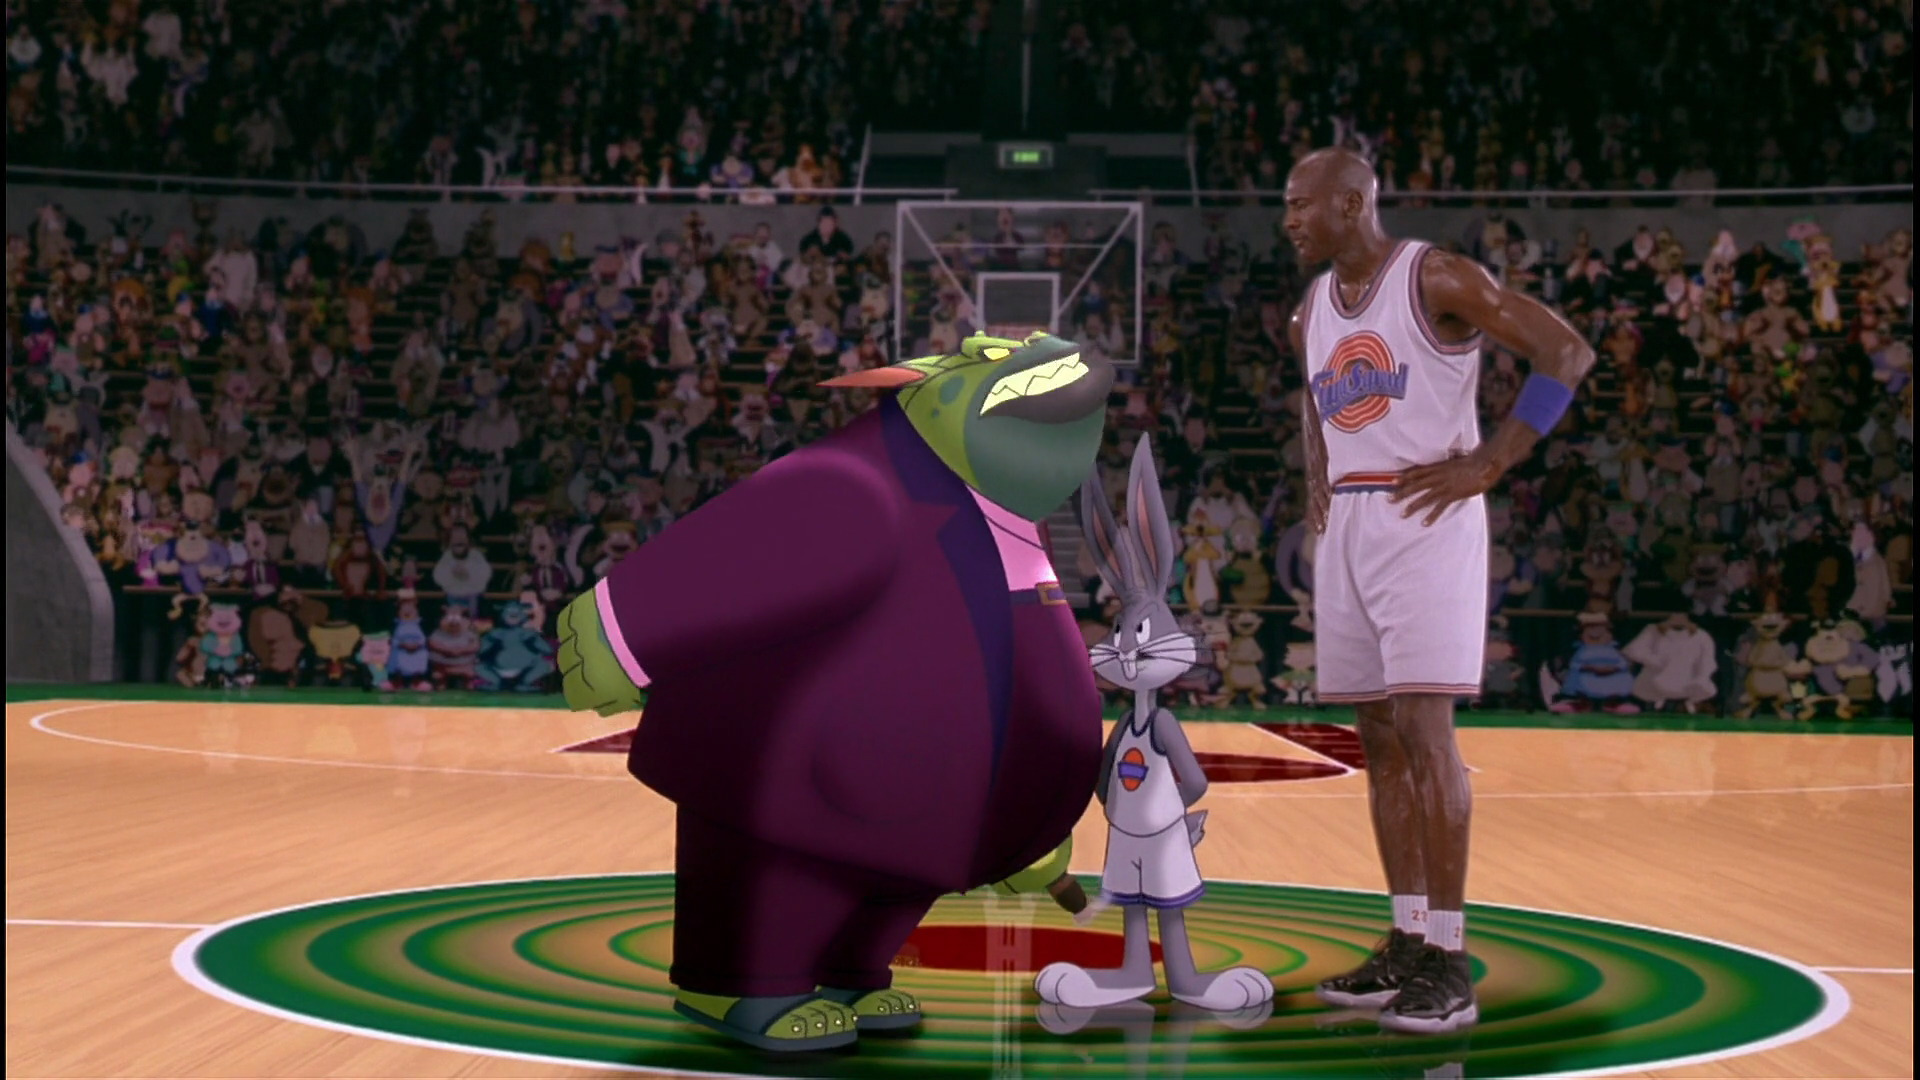 https://redringsofredemption.files.wordpress.com/2015/09/space-jam-disneyscreencaps-com-7328.jpg